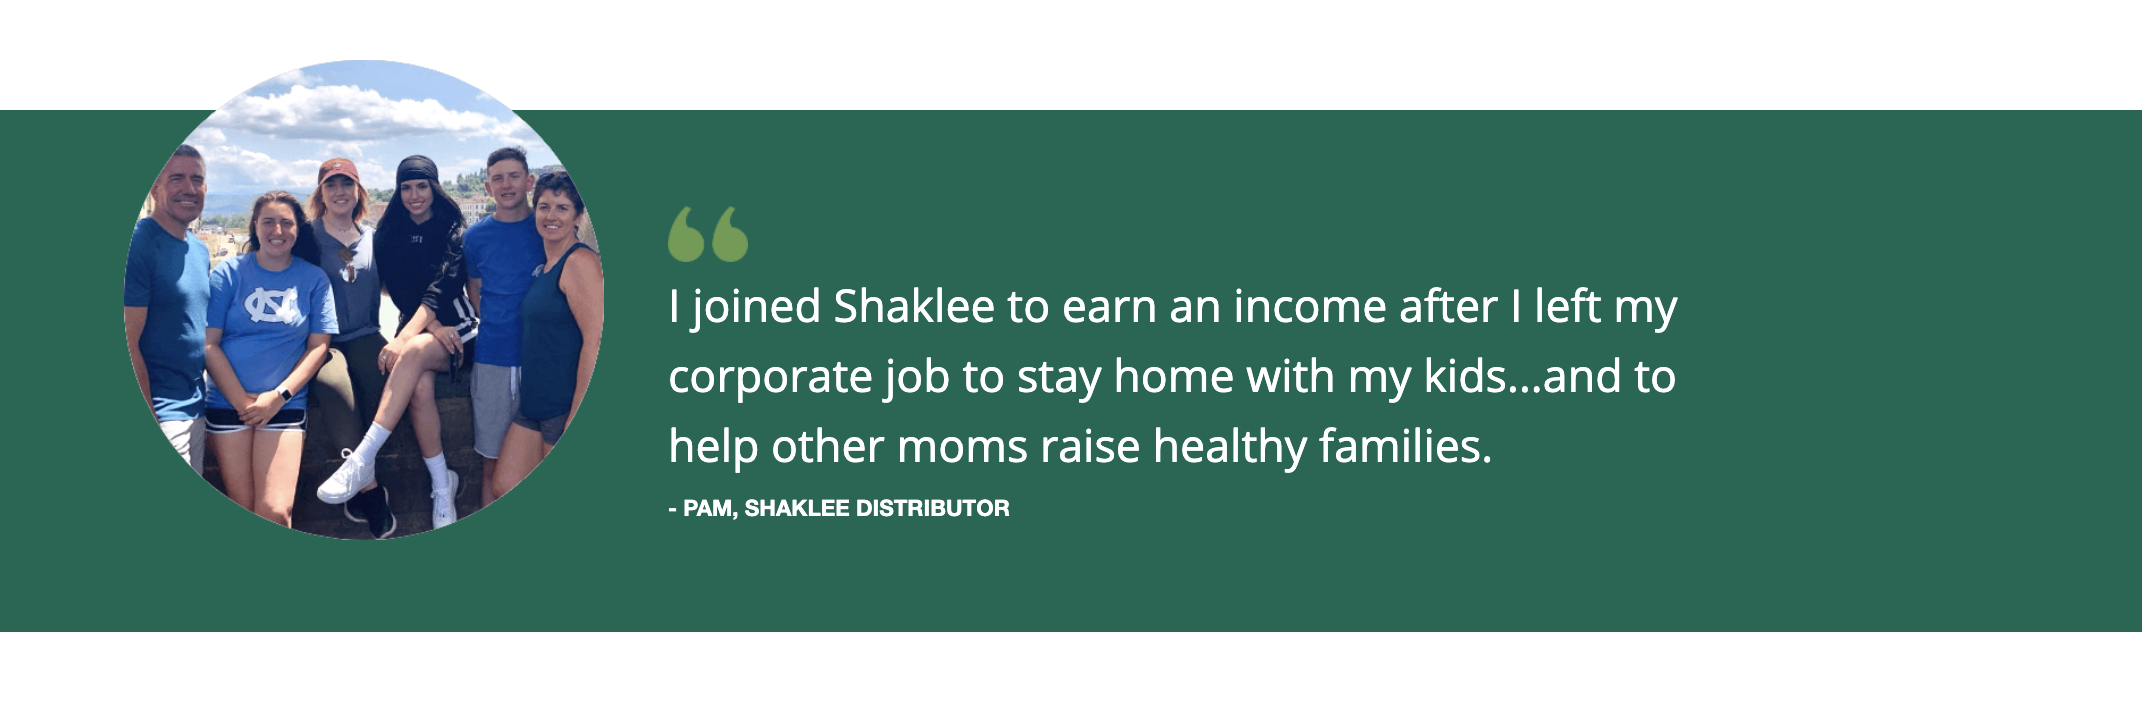 shaklee distributor benefits